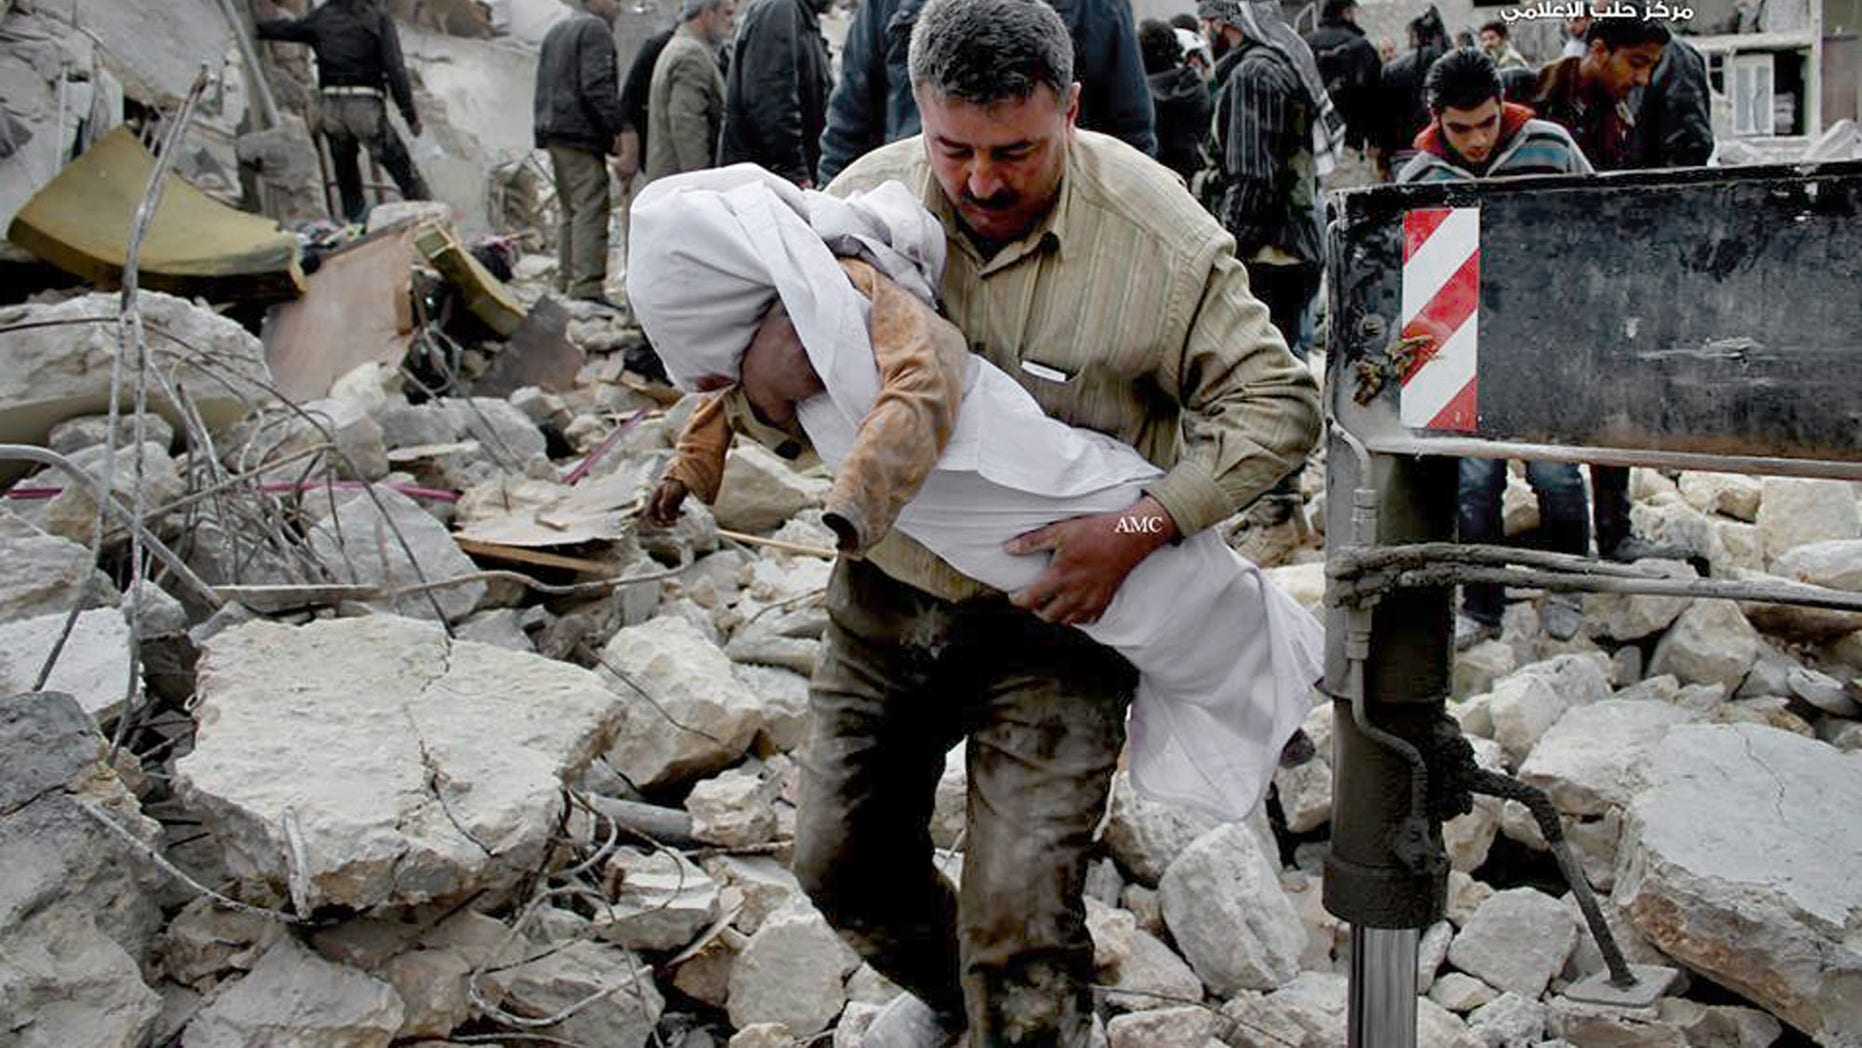 In this Wednesday, Jan. 29, 2014 citizen journalism image provided by Aleppo Media Center (AMC), an anti-Bashar Assad activist group, which has been authenticated based on its contents and other AP reporting, shows a Syrian man carrying the body of a child who was killed following a Syrian government airstrike in Aleppo, Syria. (AP Photo/Aleppo Media Center, AMC)